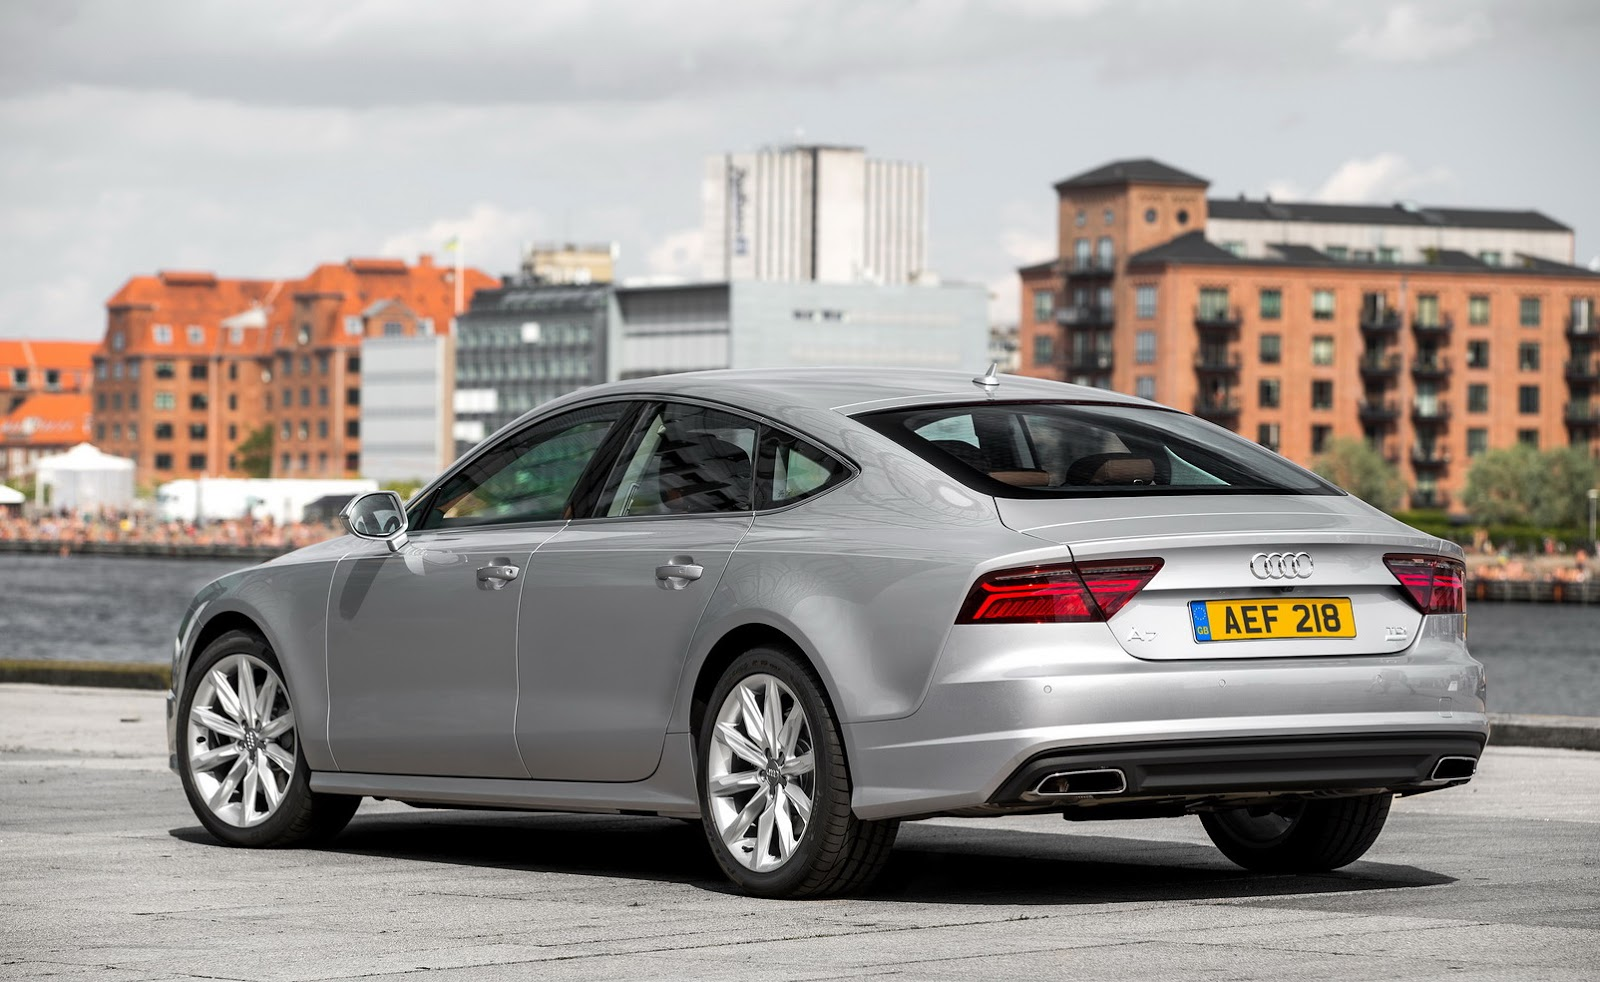 Facelifted 2015 Audi A7 Sportback's UK Prices Revealed